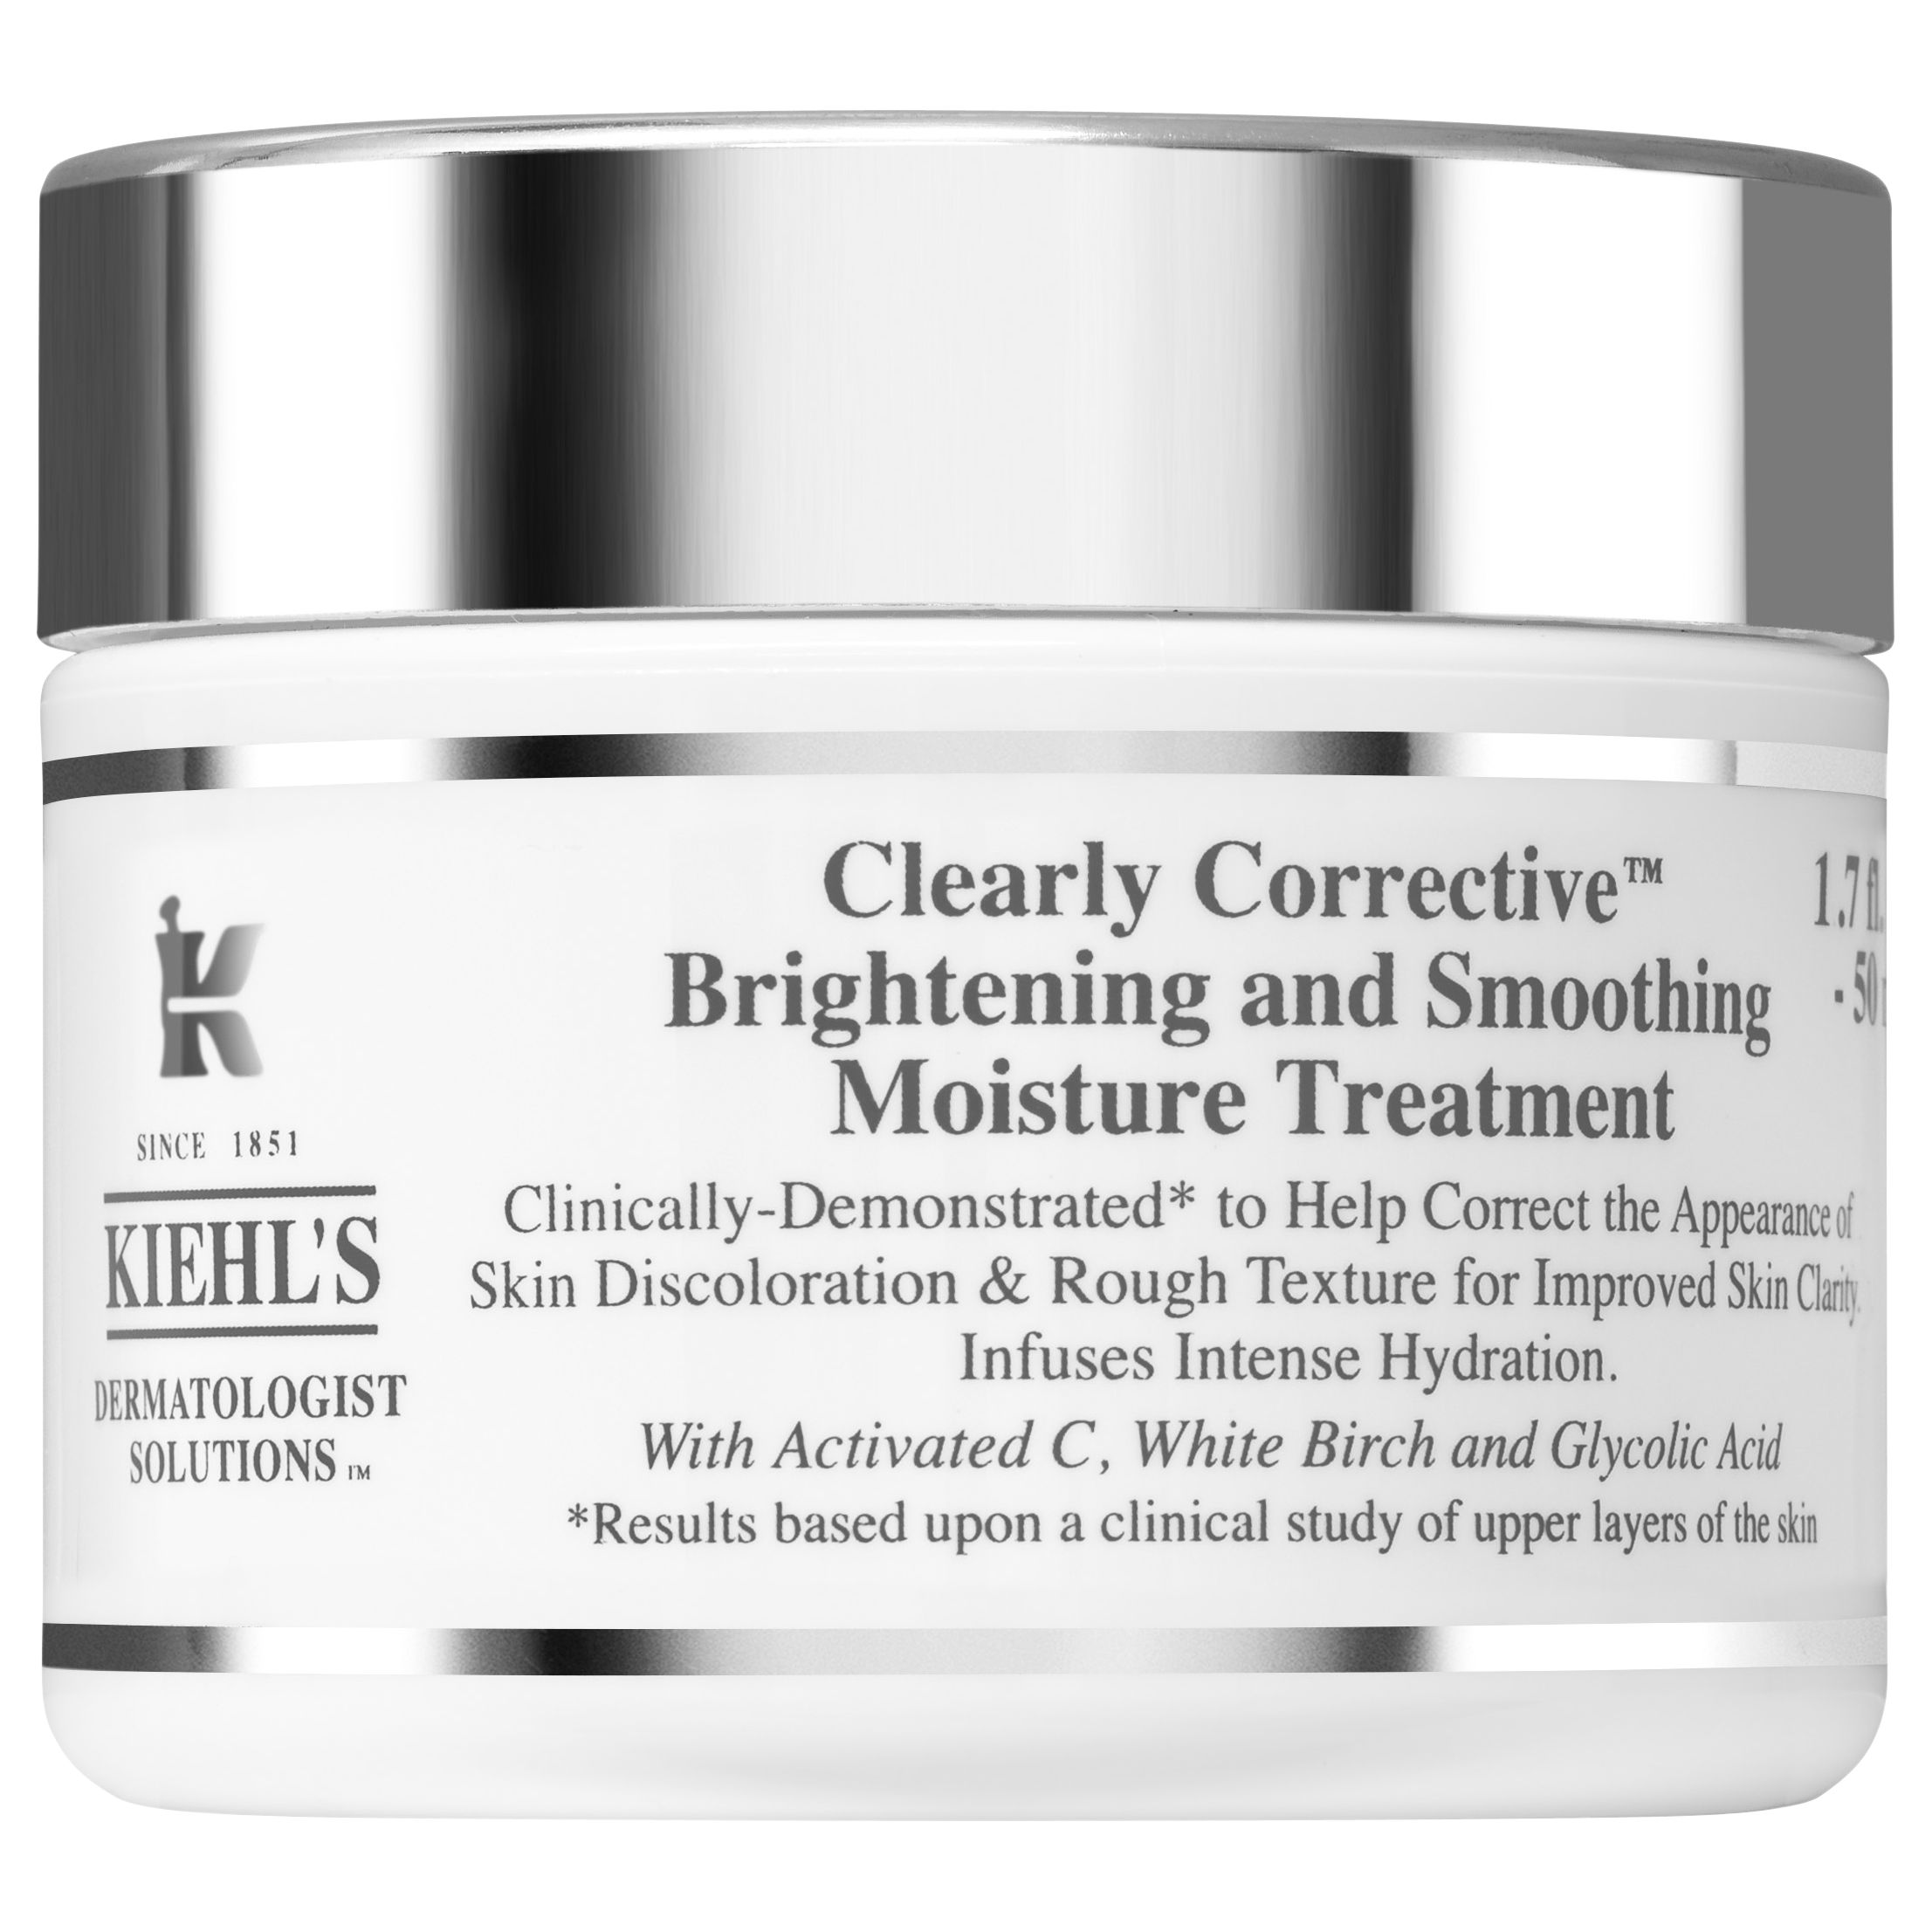 Kiehls Kiehl's Clearly Corrective Brightening & Smoothing Moisture Treatment, 50ml